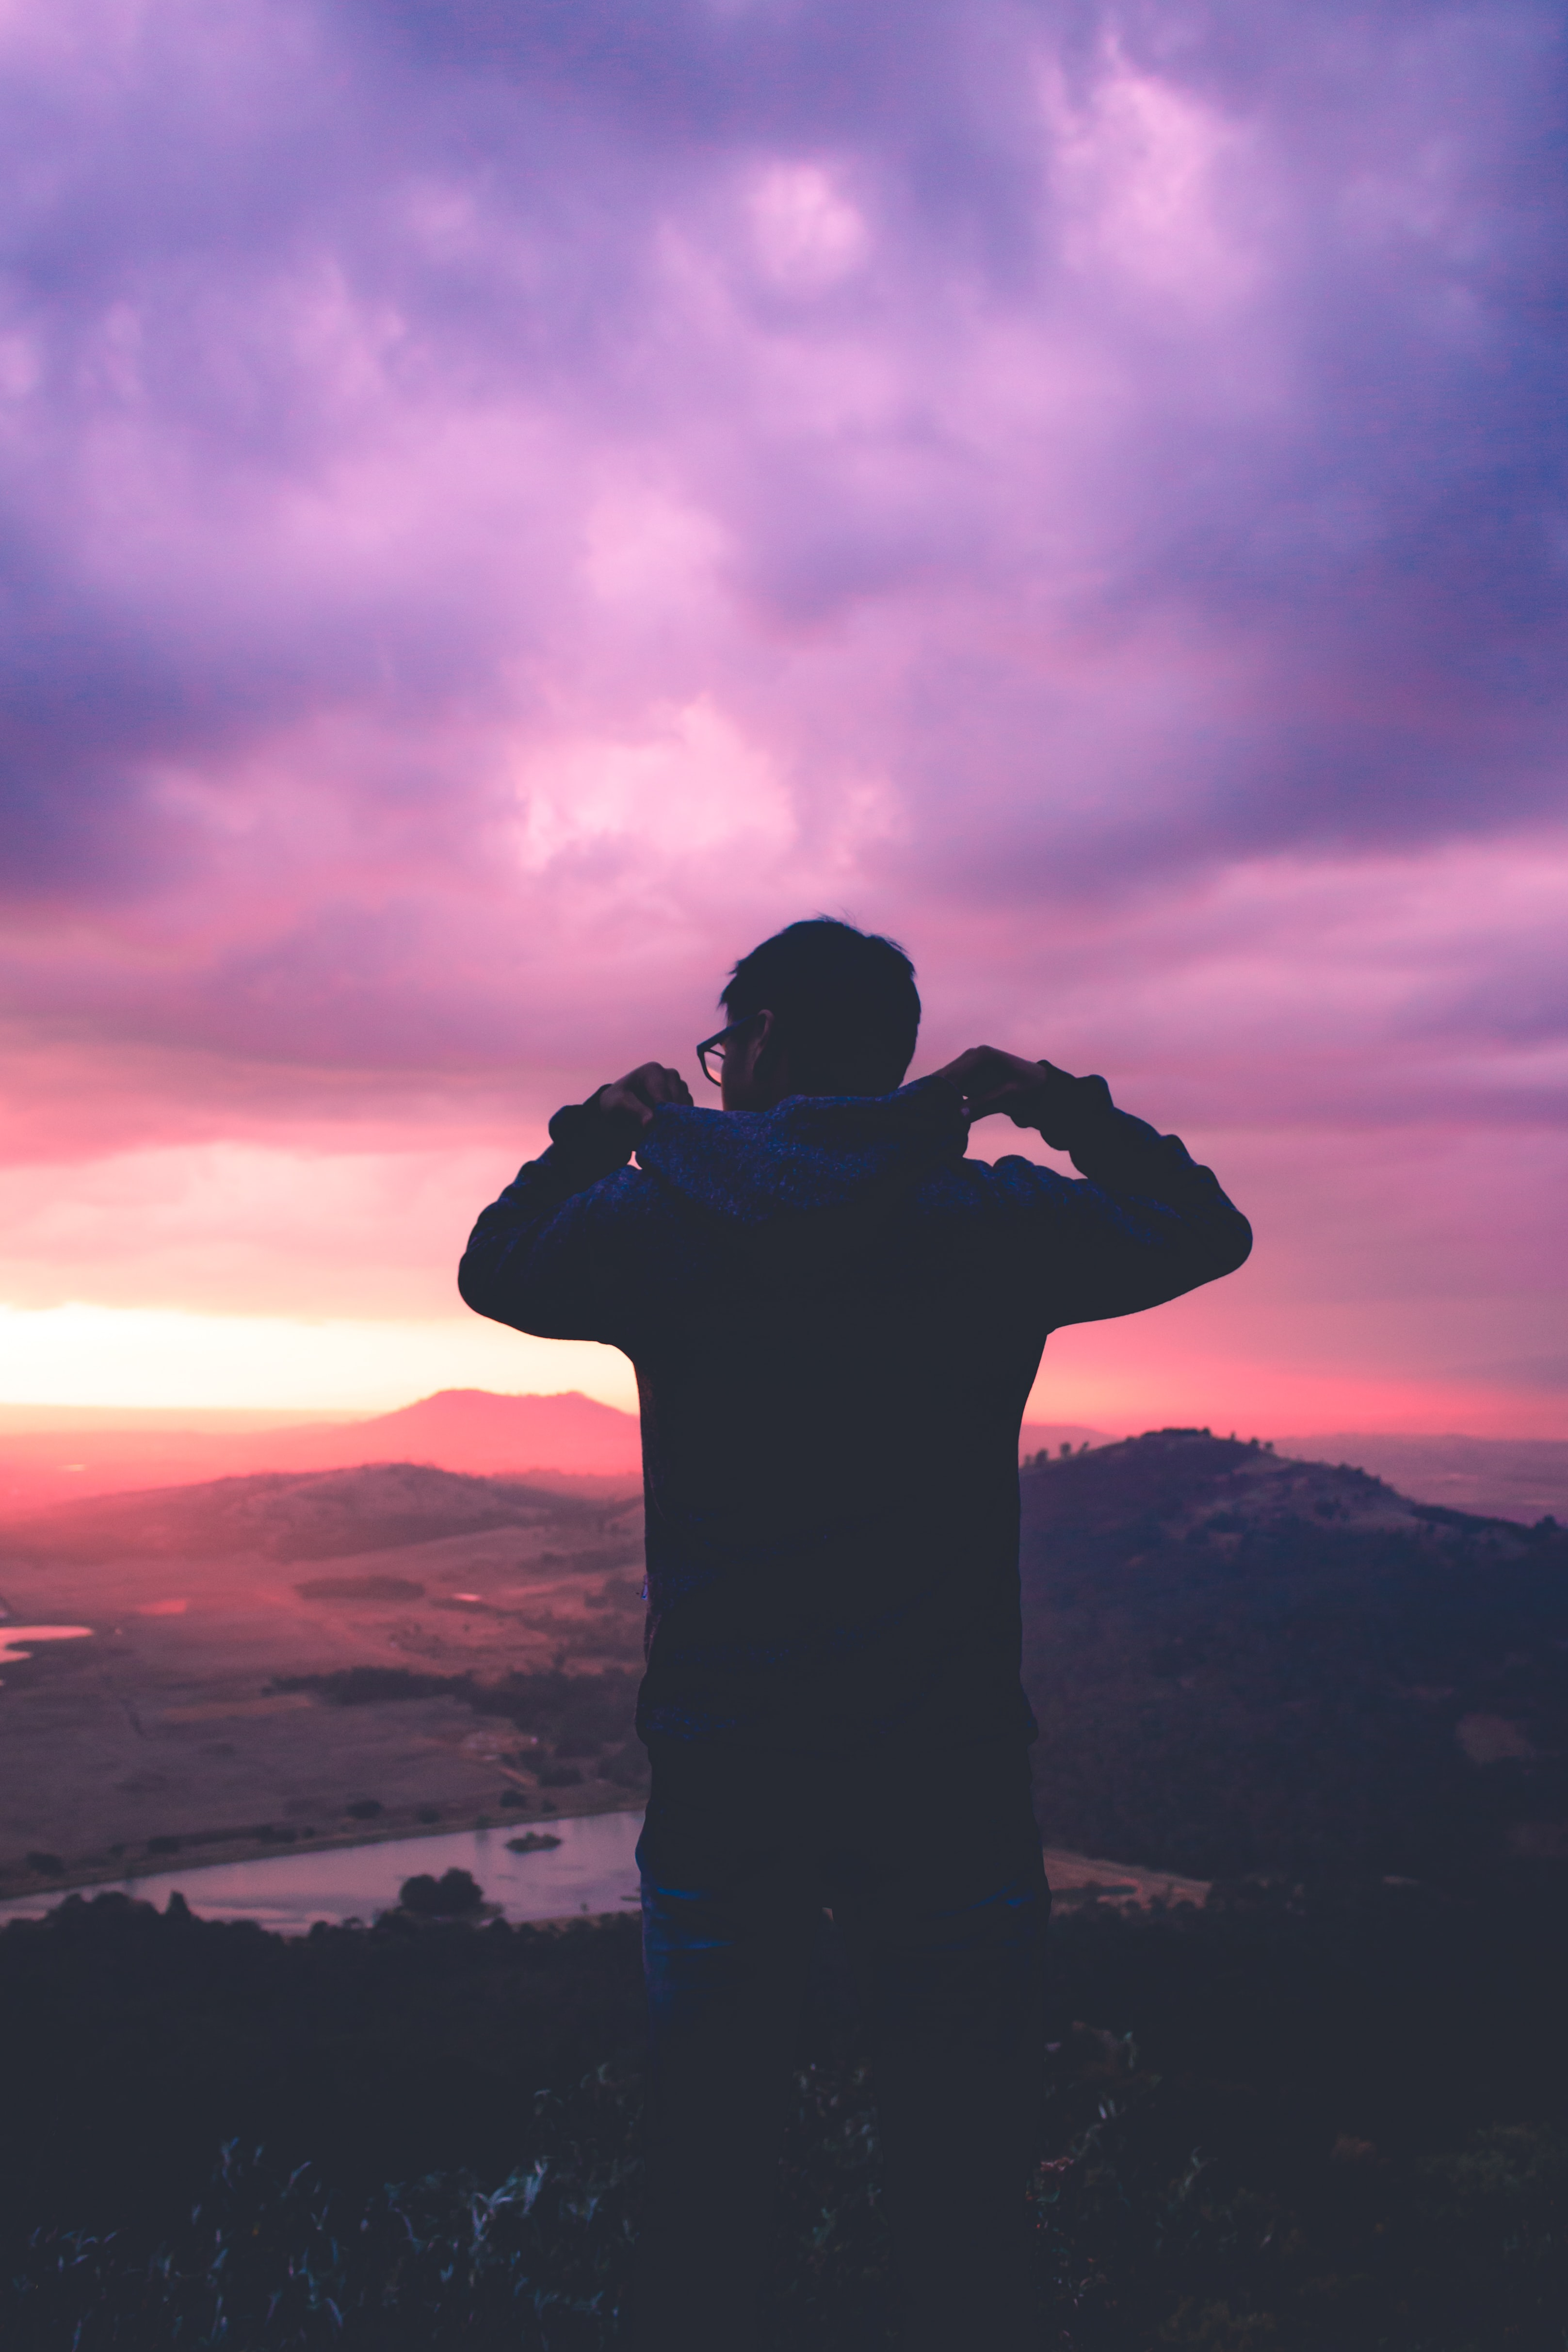 A silhouette of a man looking out at a pink sunset and purple cloudy sky in Toluca, Mexico